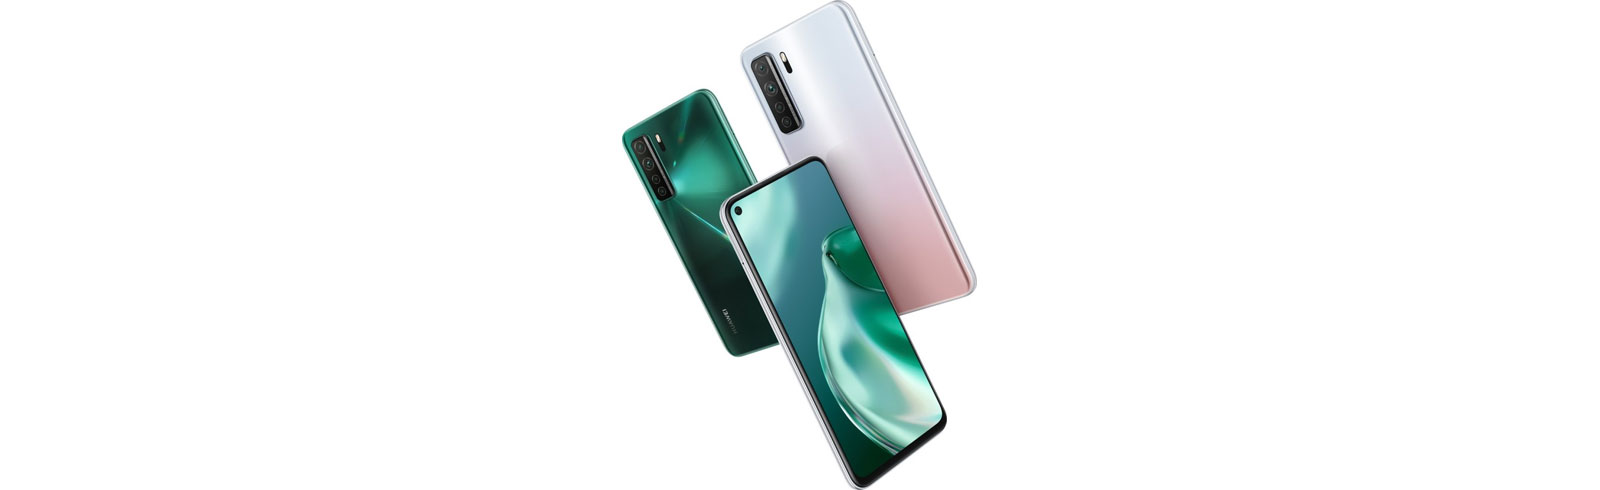 Huawei P40 Lite 5G and Huawei Y8p go official - specifications and prices